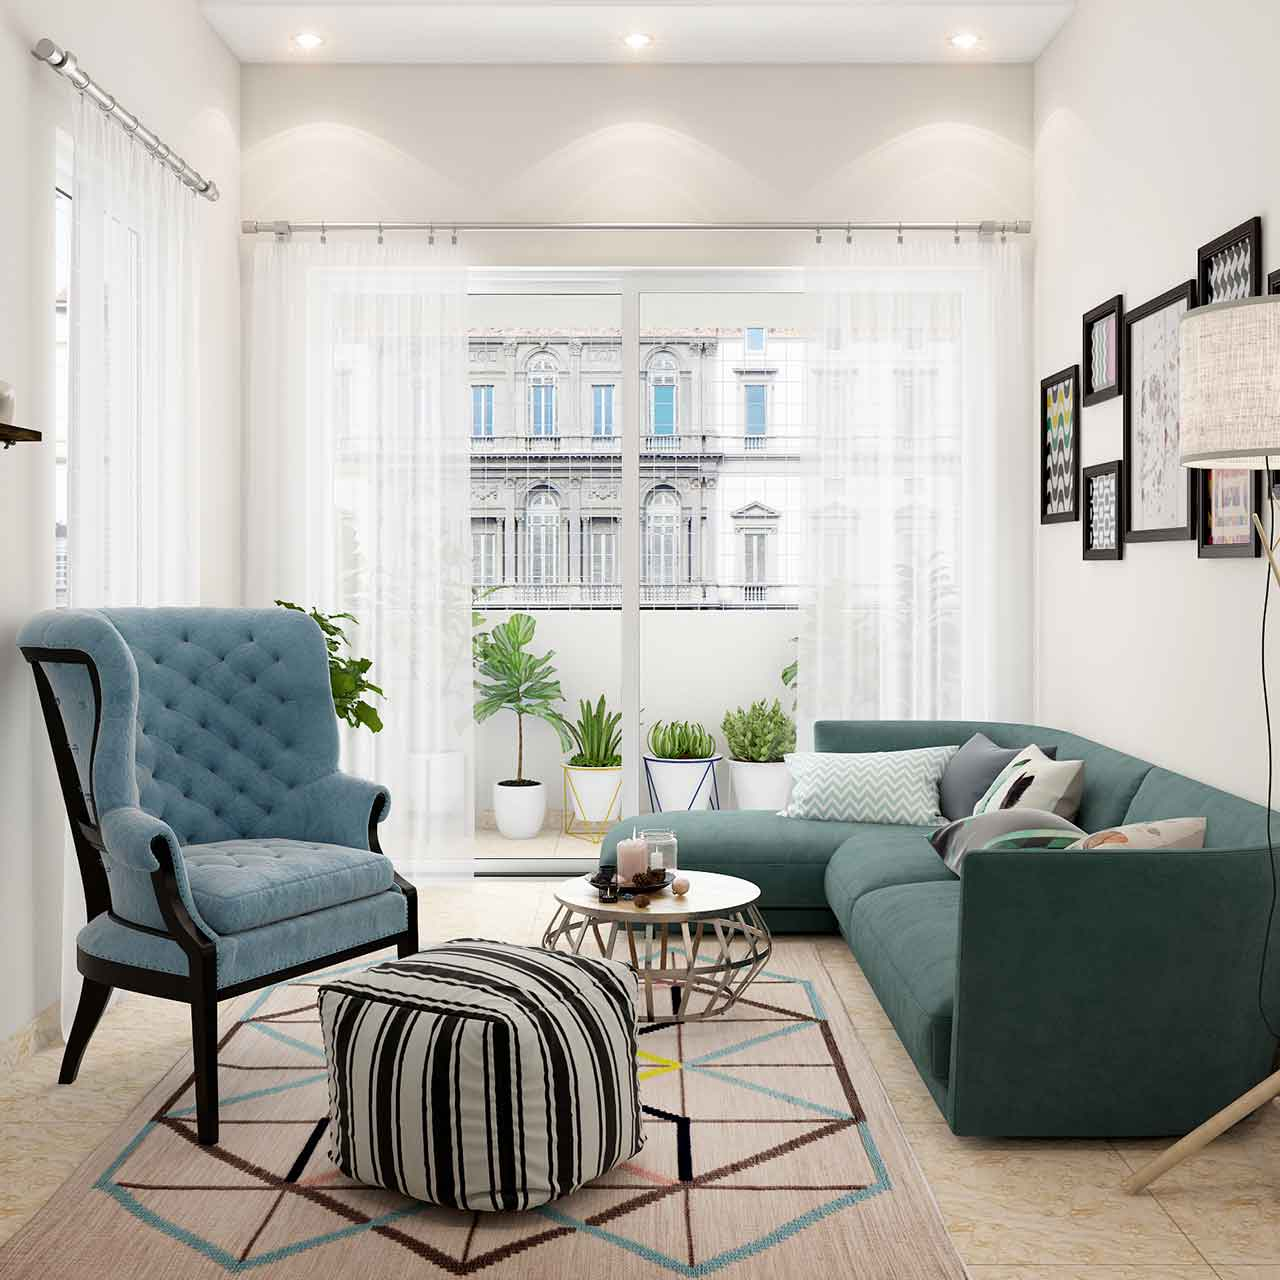 Scandinavian style is a hot favourite of most designers for living room interior design